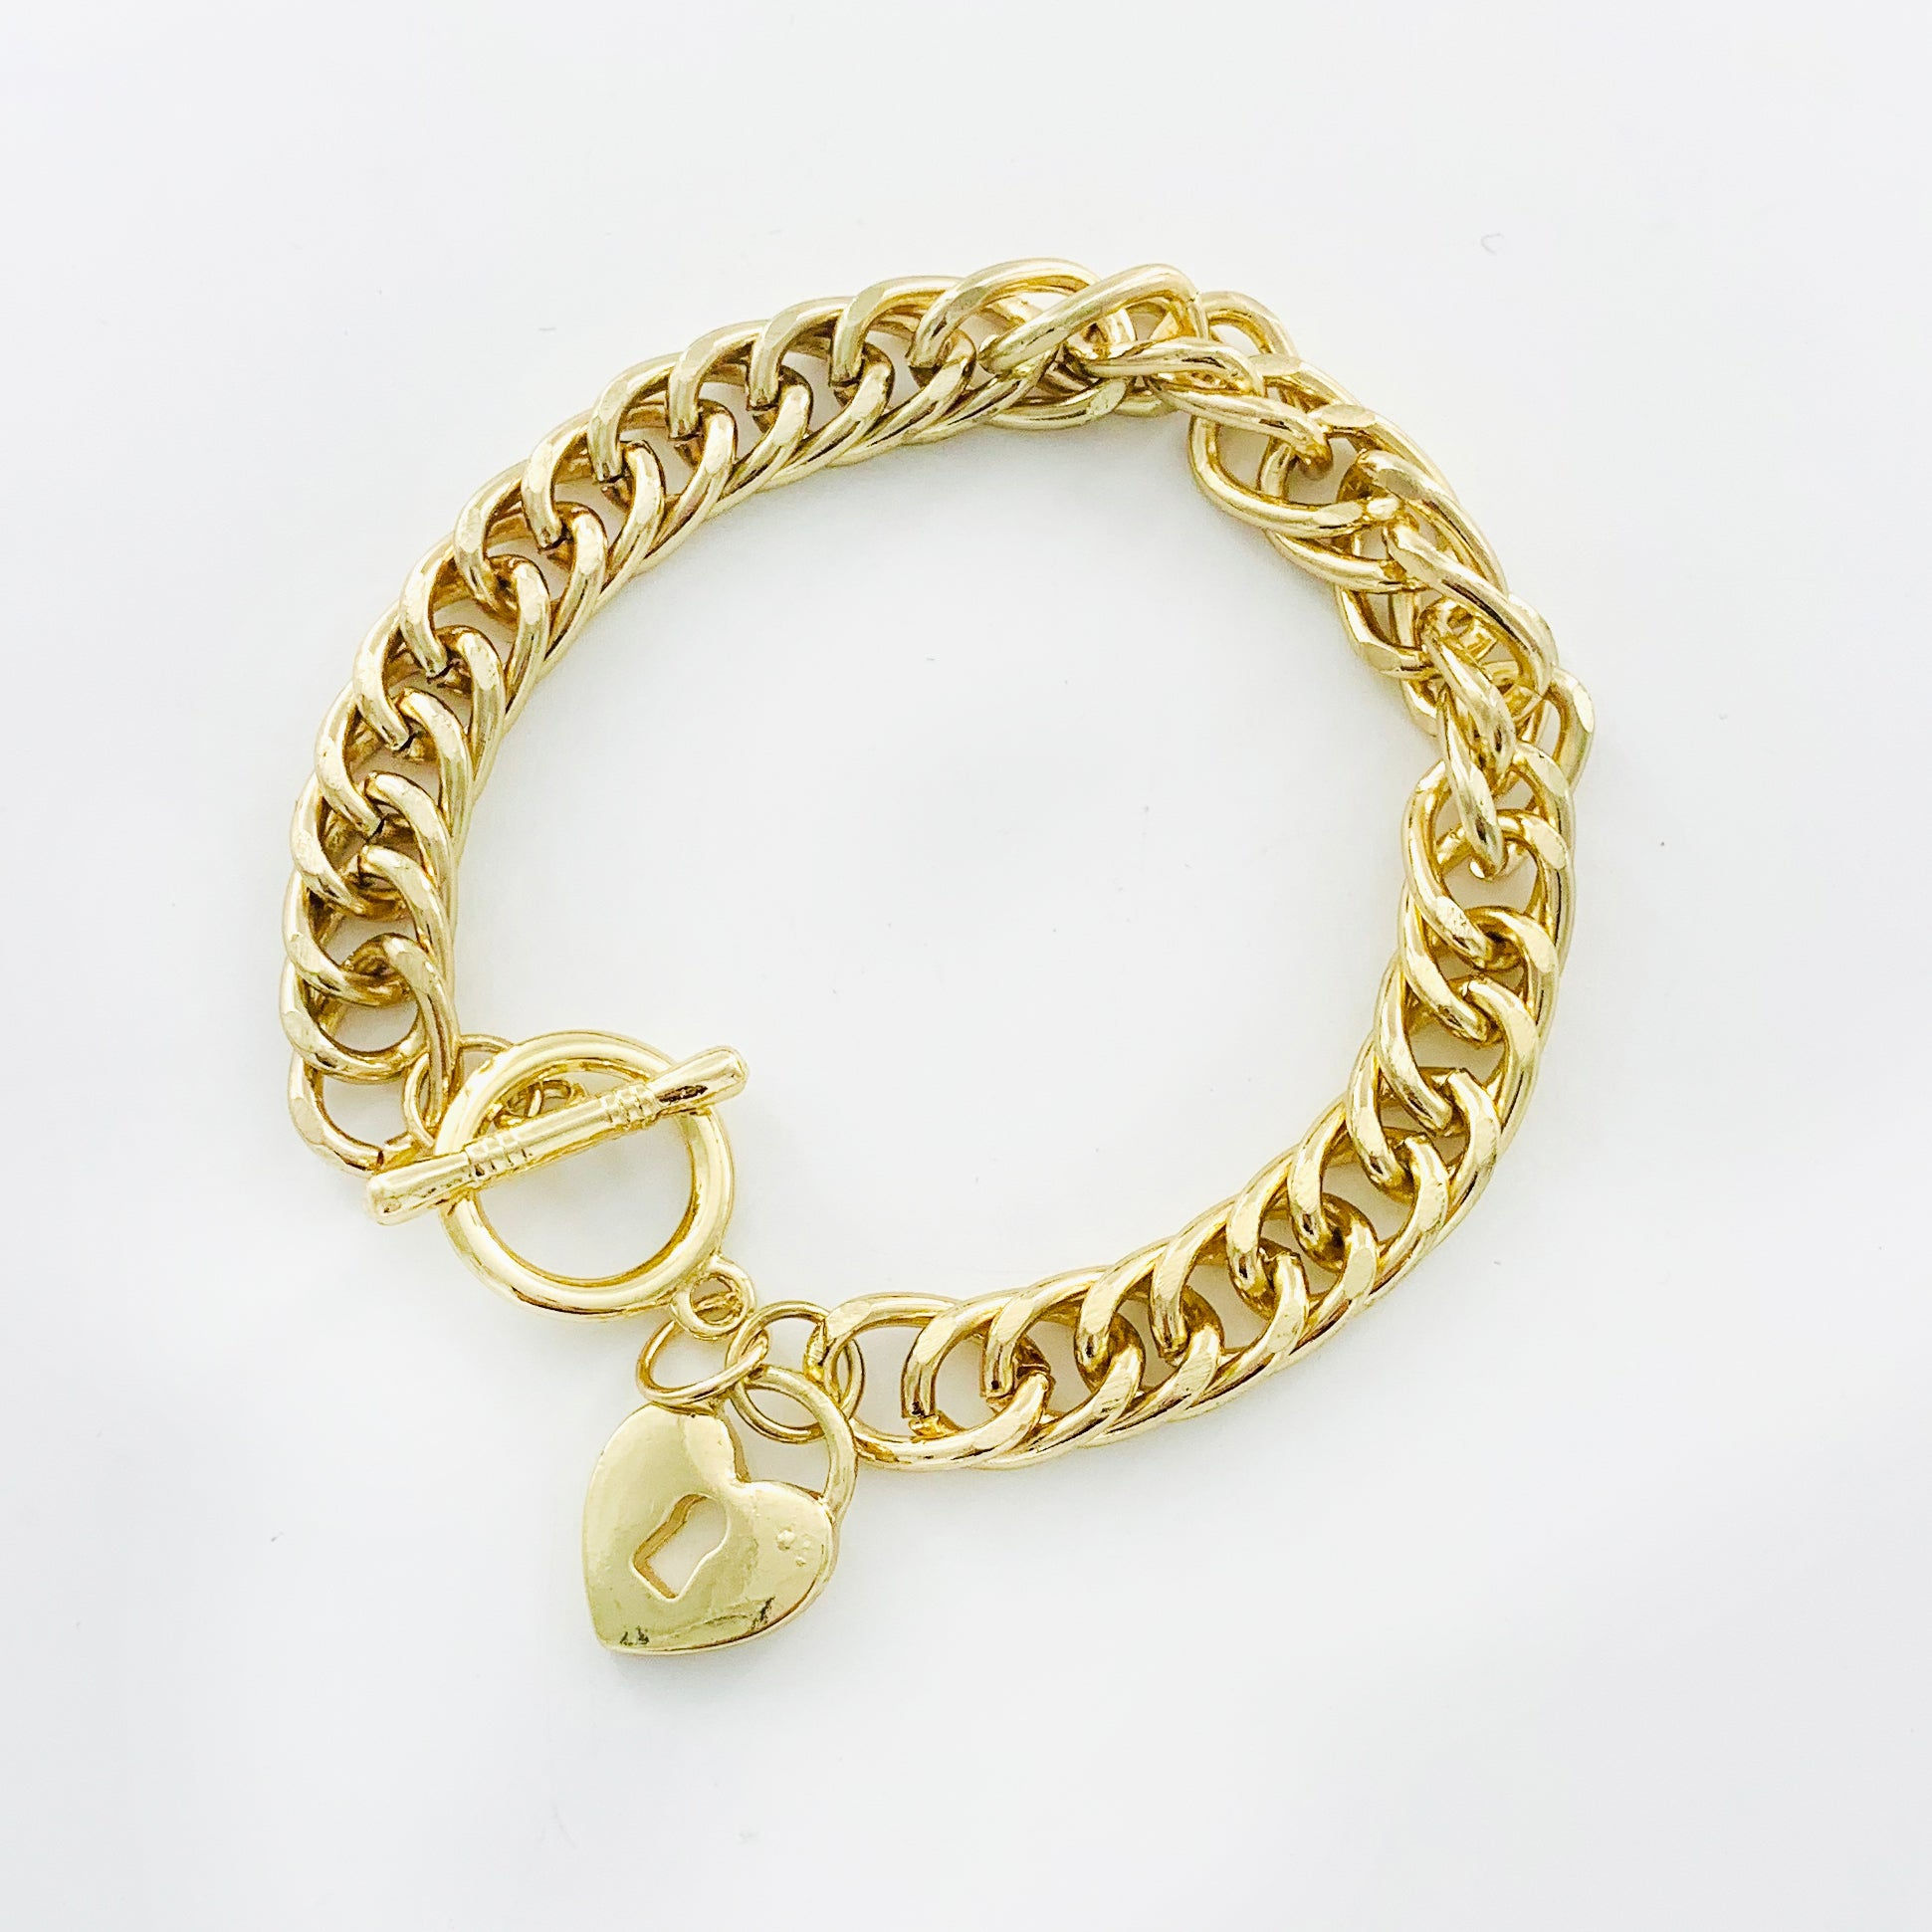 Chunky gold chain with gold heart charm